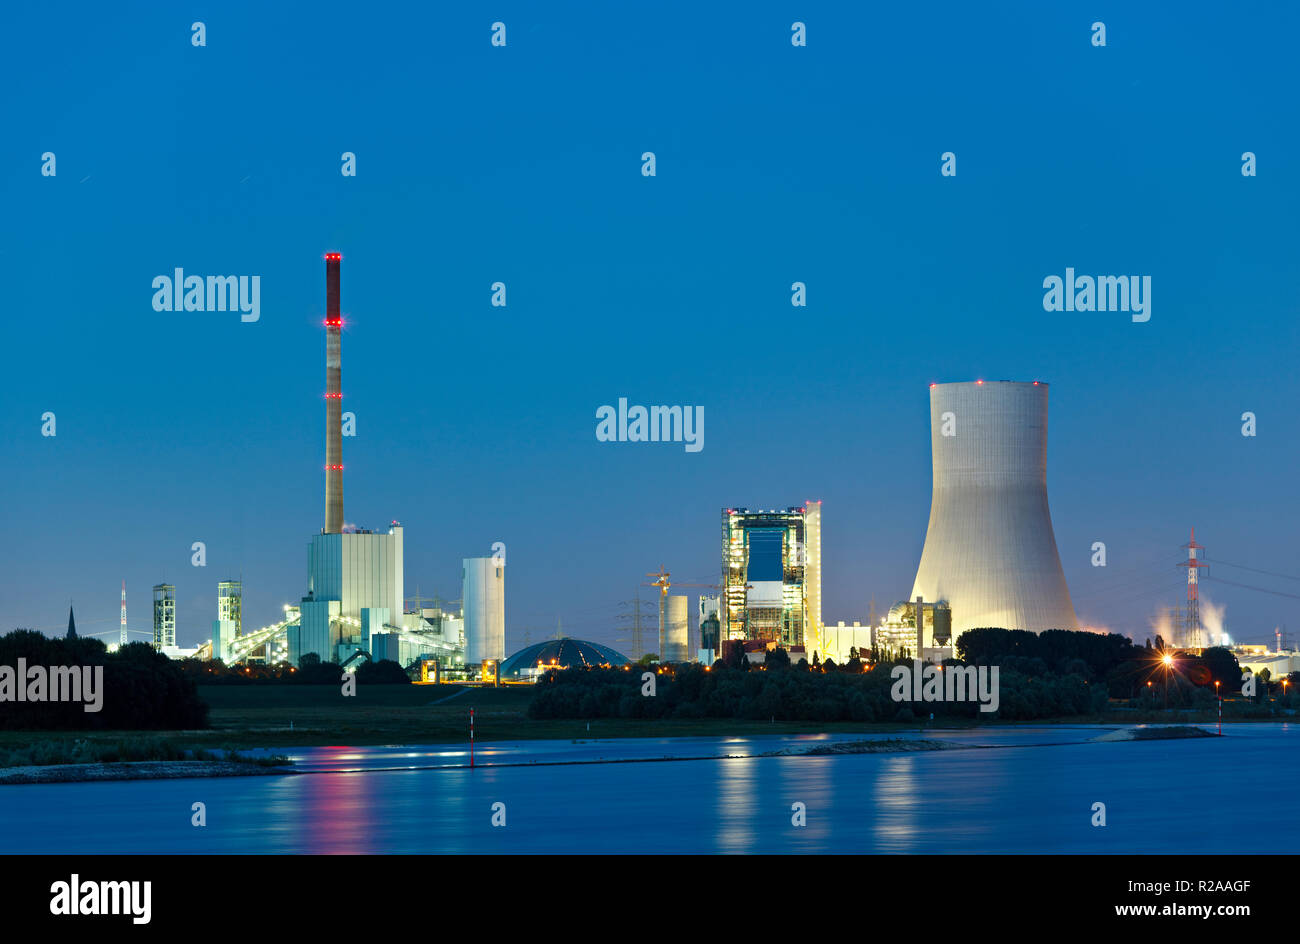 Old and new coal power stations side by side with reflection in the water and night blue sky. The new cooling tower has a height of 180m which makes i - Stock Image